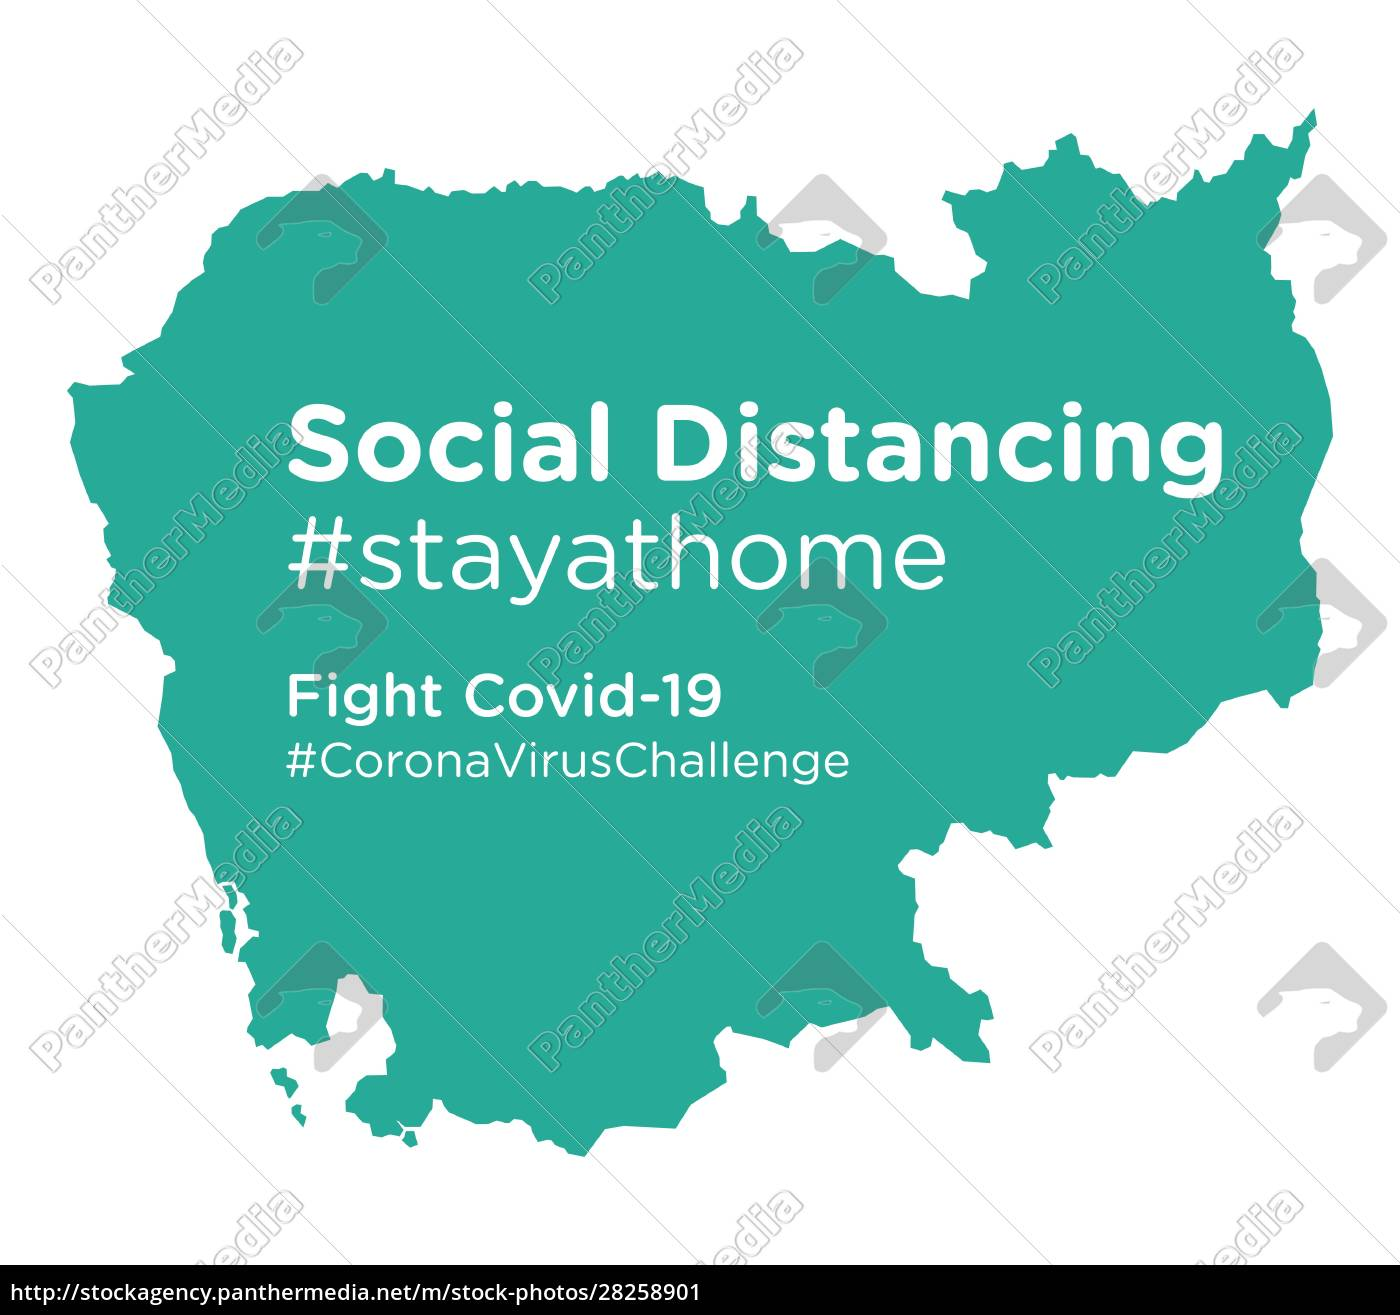 cambodia, map, with, social, distancing, #stayathome - 28258901